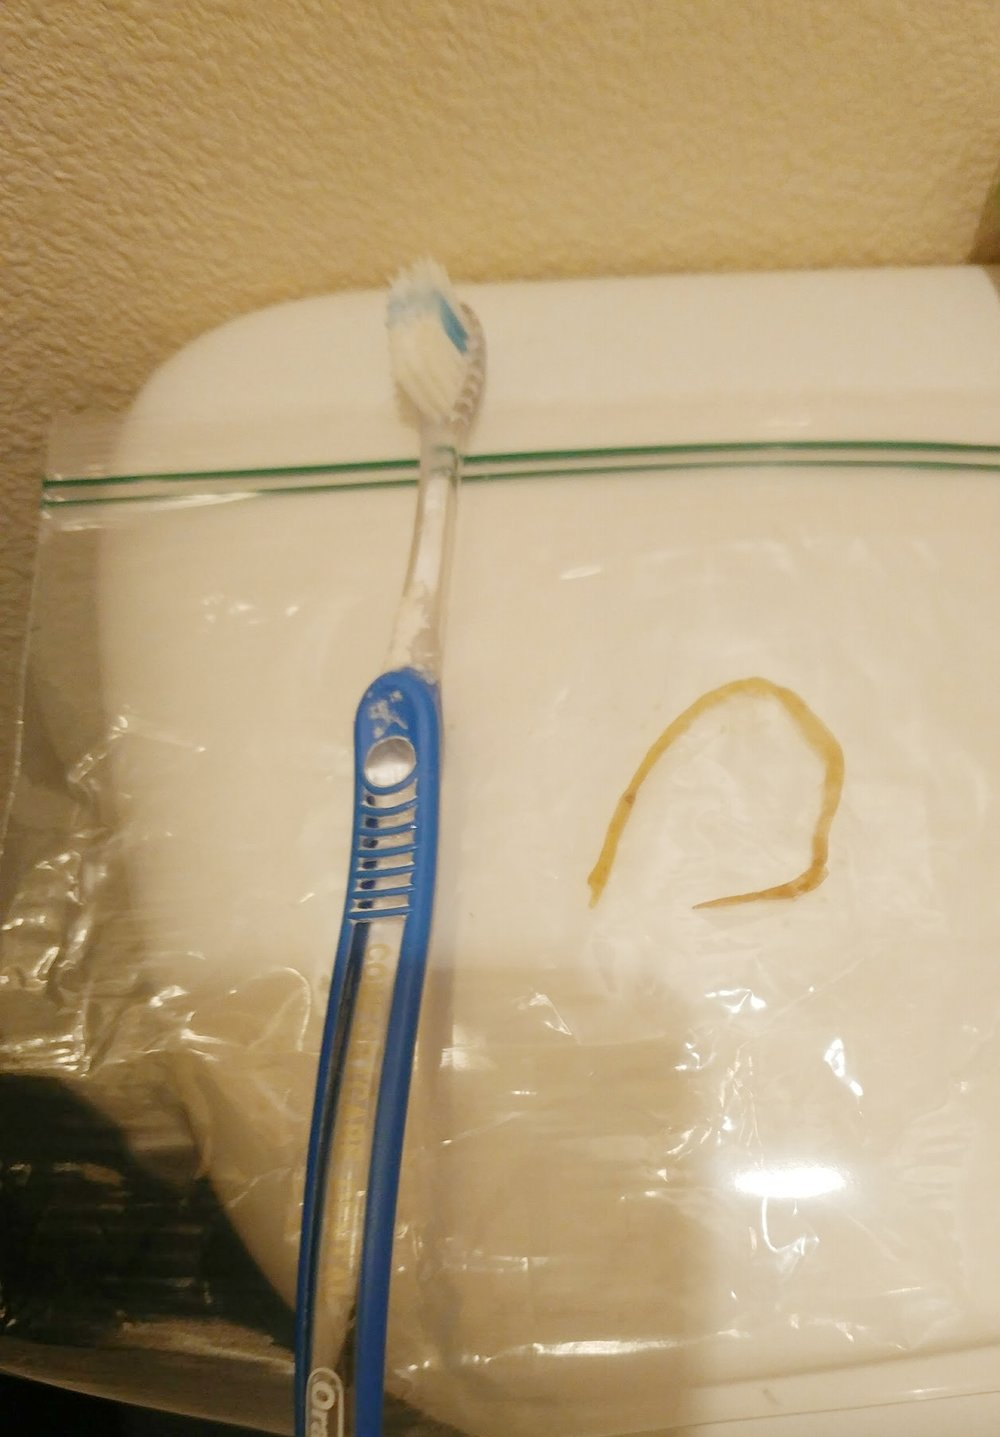 One of my parasites that came out in my stool.Trust me, I was really grossed out when I first saw this too. Toothbrush somehow makes this picture grosser.  I did not touch it to my toothbrush, just put it on top of bag for size comparison.